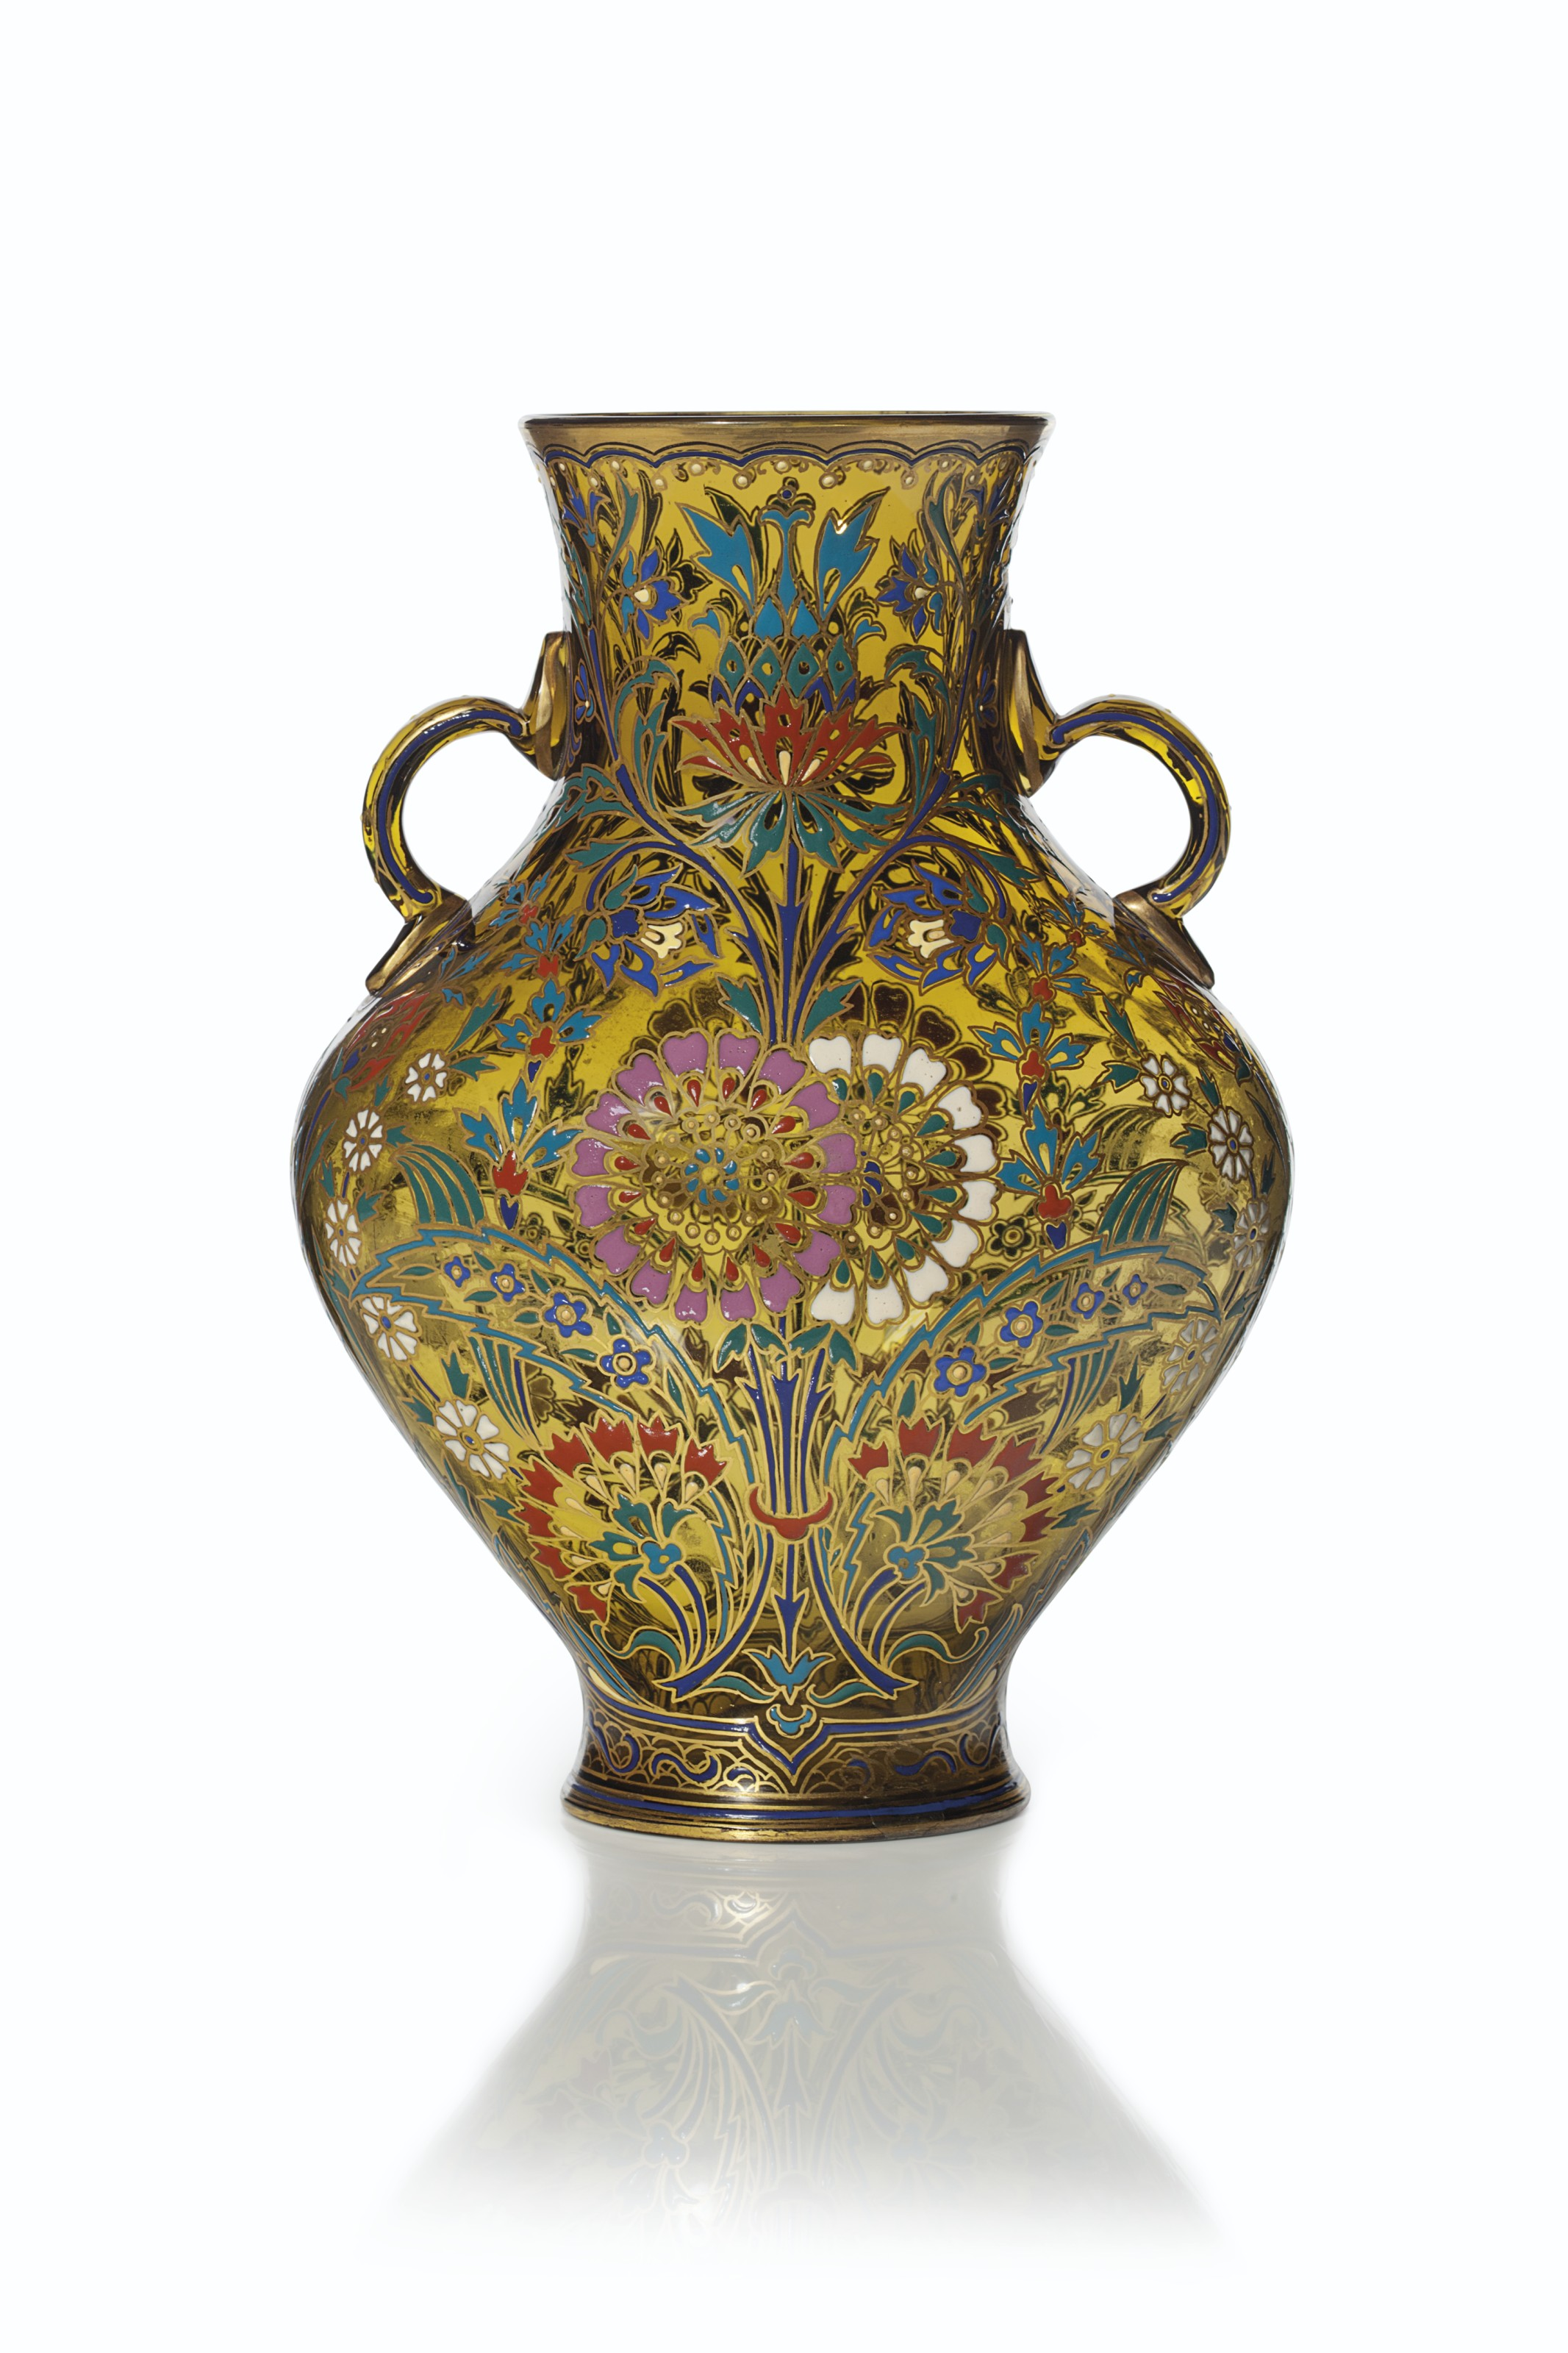 2015_NYR_03731_0174_000(a_j_l_lobmeyr_two-handled_enameled_persian_style_amber_glass_vase_circ)